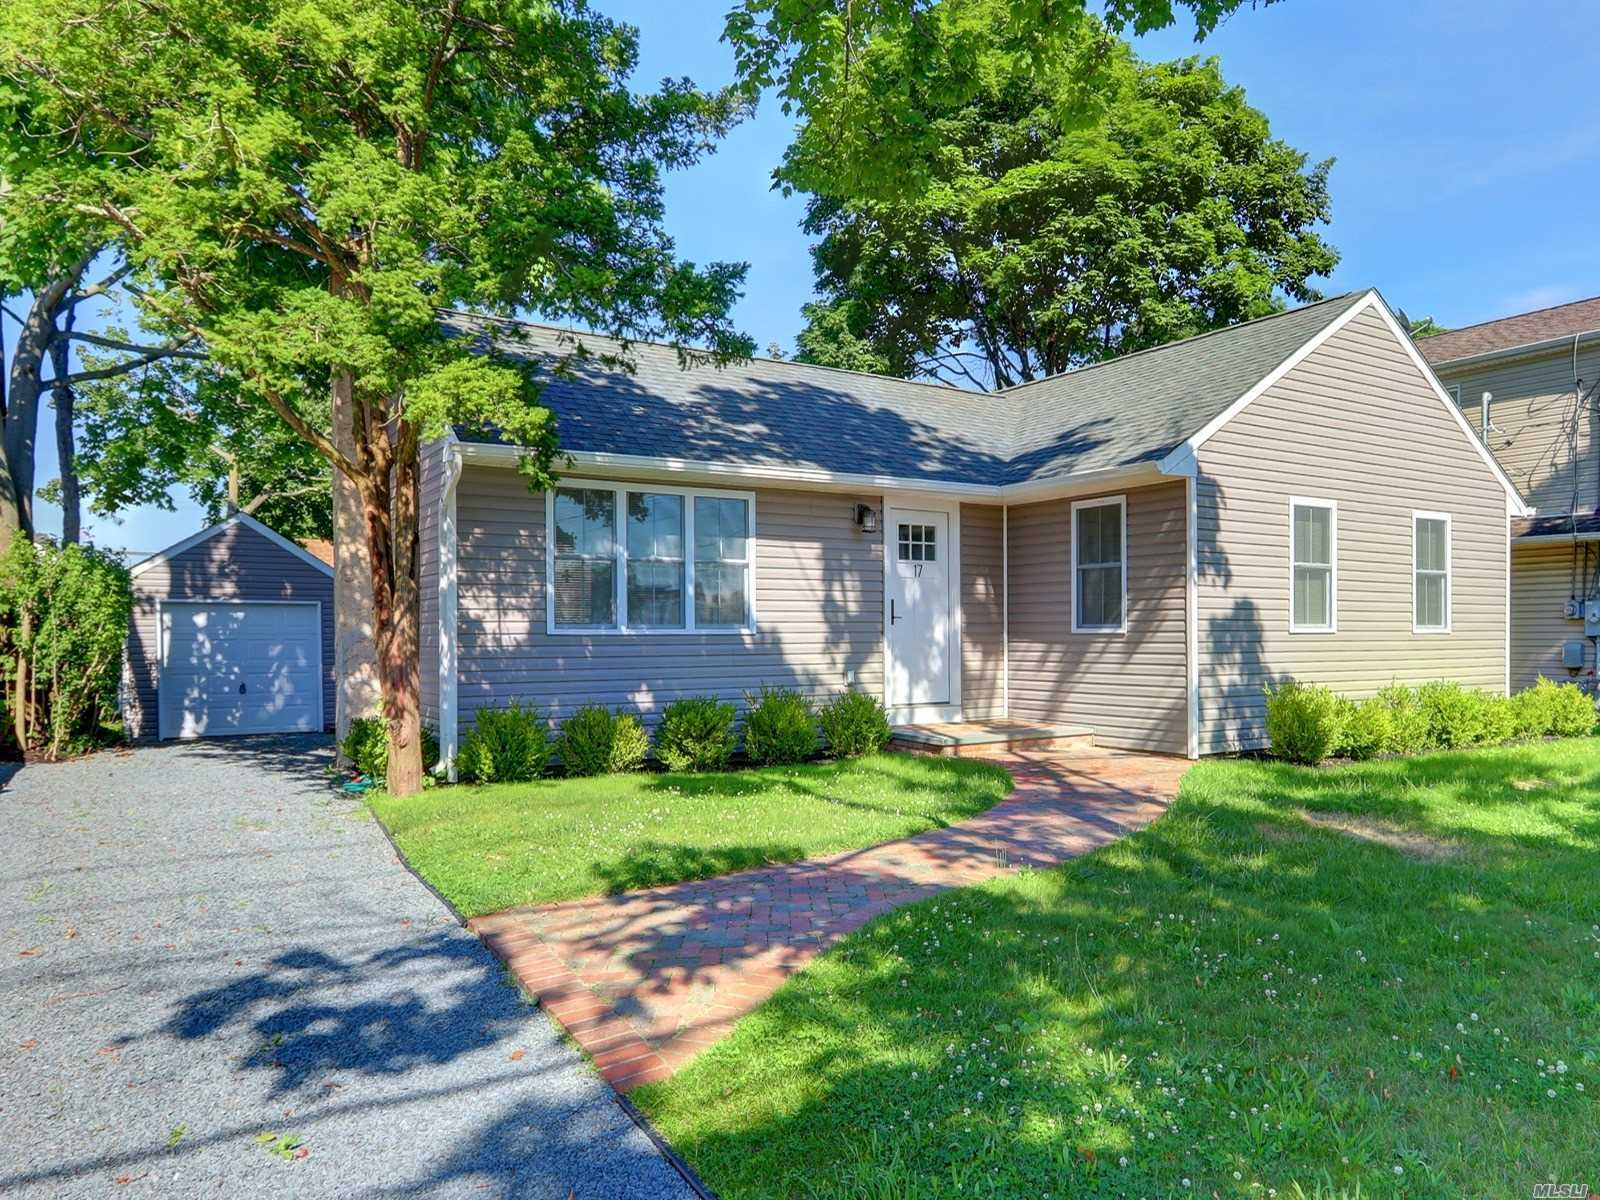 Come See This Completely Renovated 3 Bedroom 1 Bath Ranch w/unfinished basement and Detached 1 Car Garage- New Roof, Windows, Siding, Vinyl Flooring, Doors, Electric, Plumbing, Bathroom, Kitchen, Appliances, Deck, Turn Key & Ready to Move in.. West Babylon Schools - Babylon Village Amenities!!